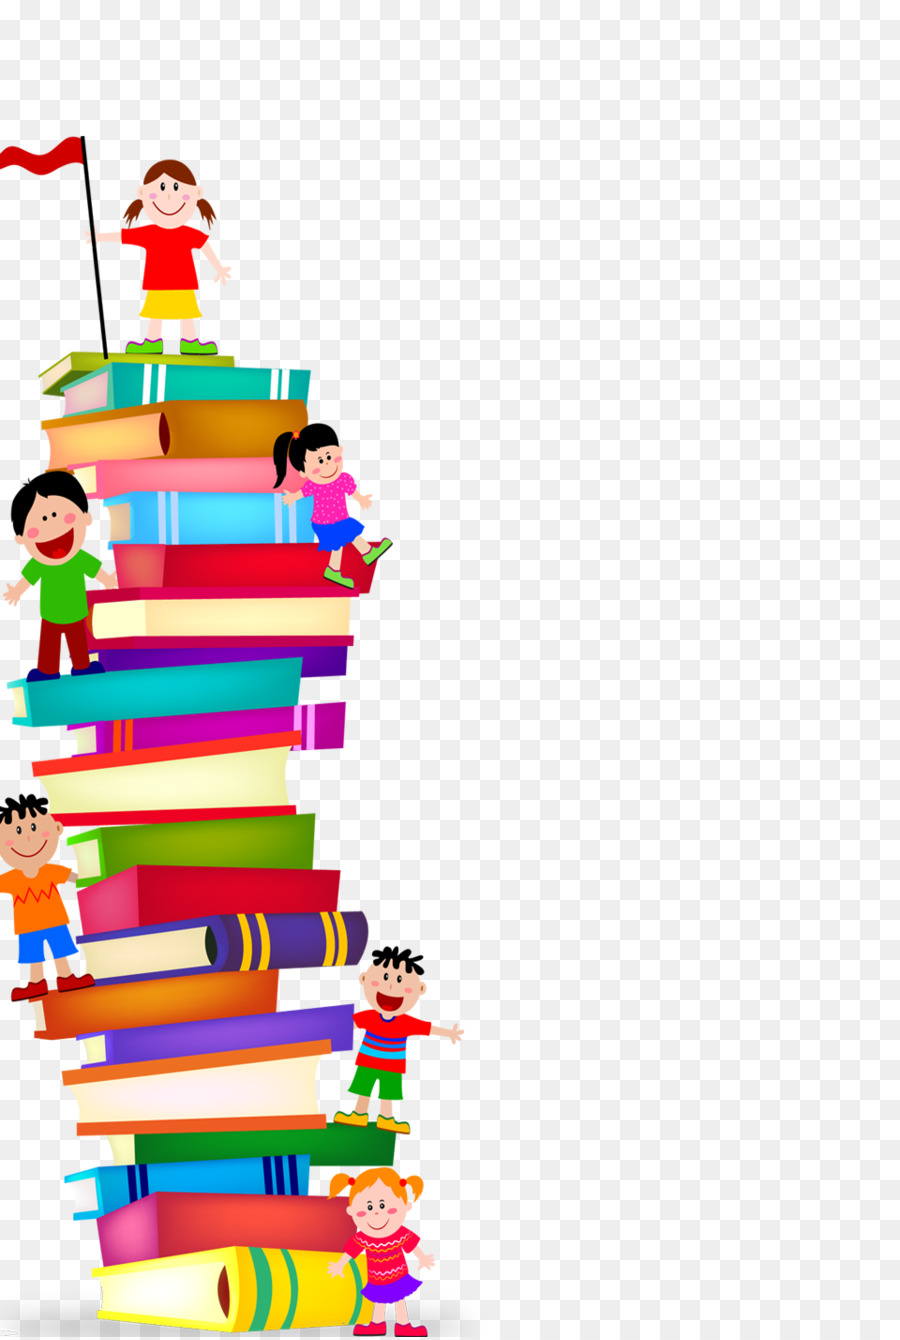 Textbook clipart literature. Child reading book png